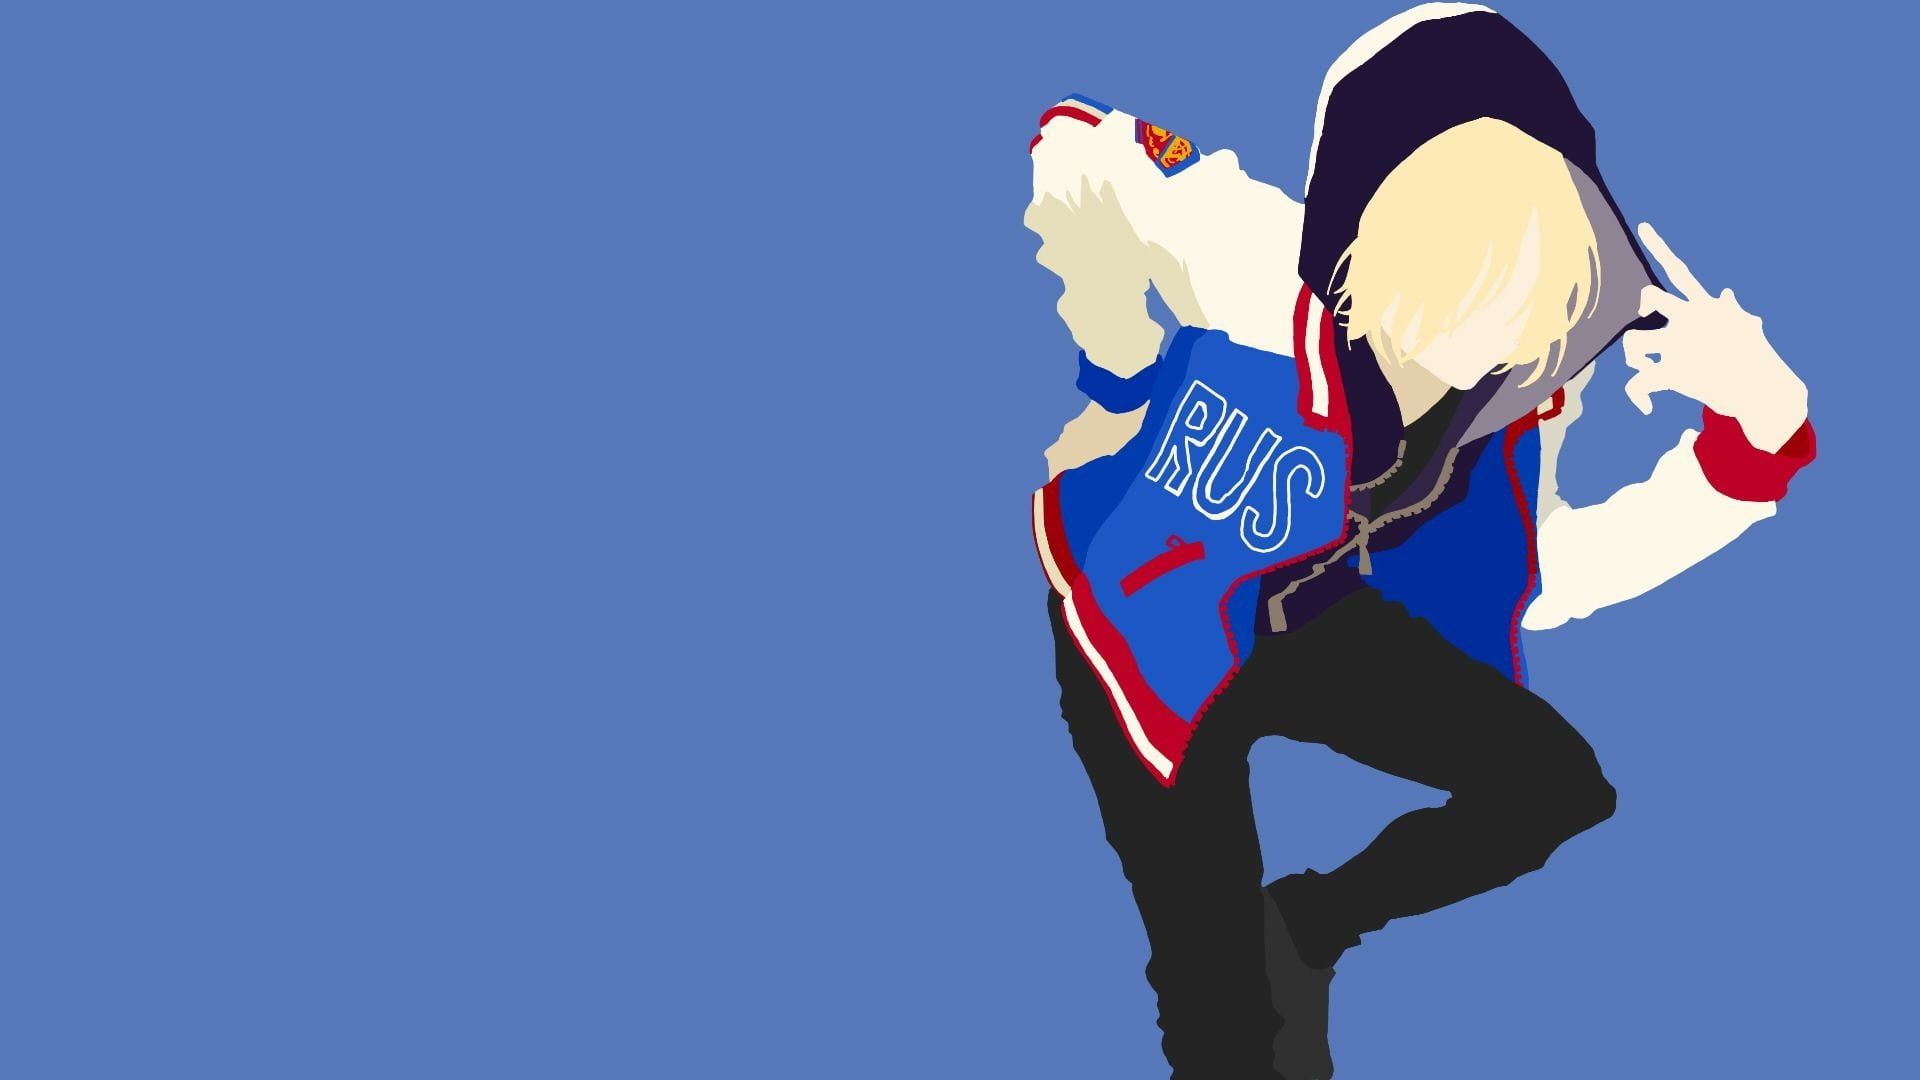 Anime Yuri On Ice Yuri Plisetsky 1080p Wallpaper Hdwallpaper Desktop Yuri Plisetsky Yuri On Ice Yuri Plisetsky Wallpaper